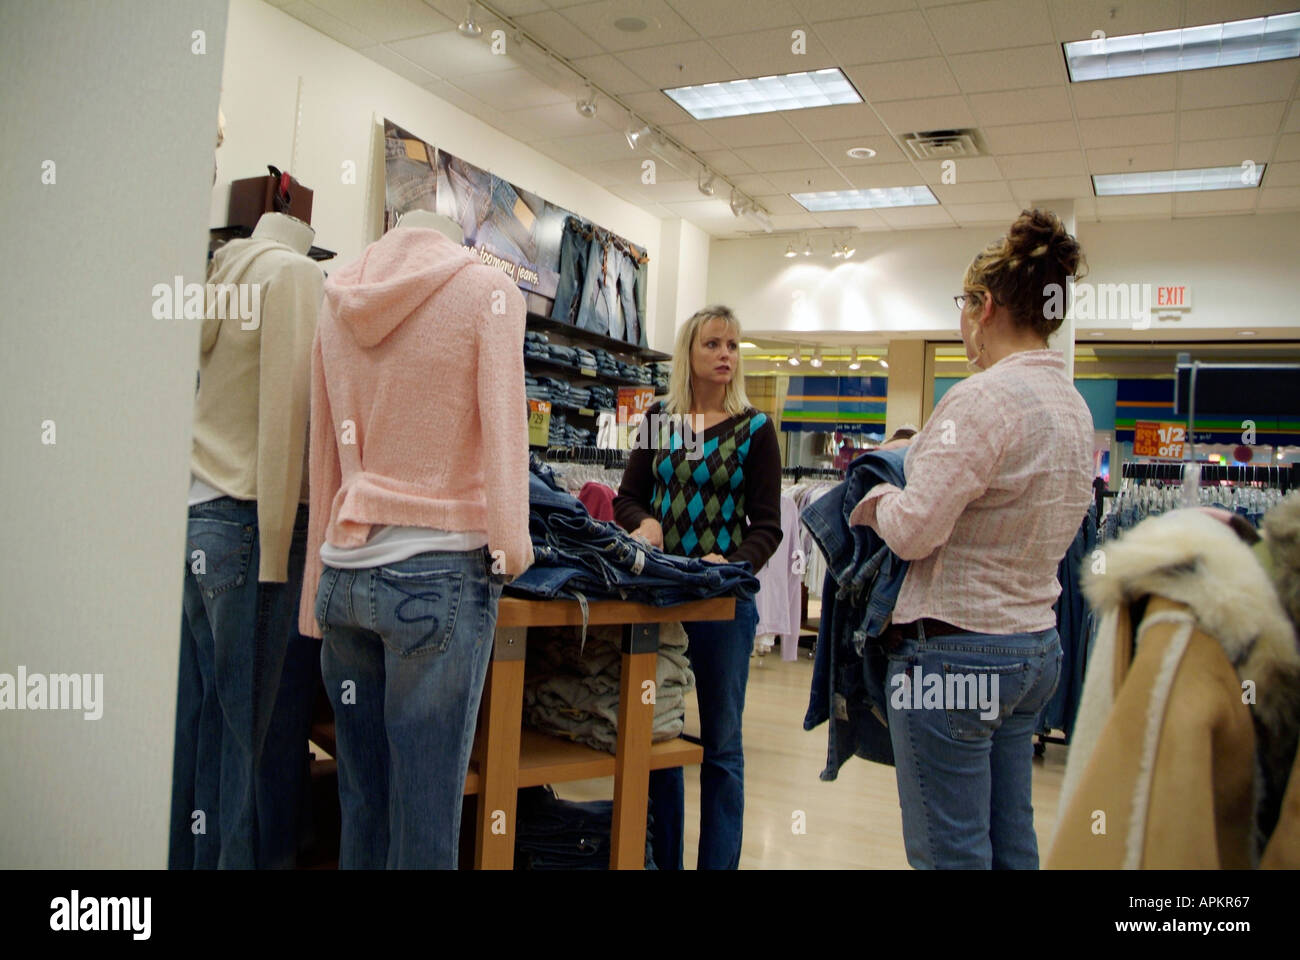 Cheap clothing stores. Young adult clothing stores